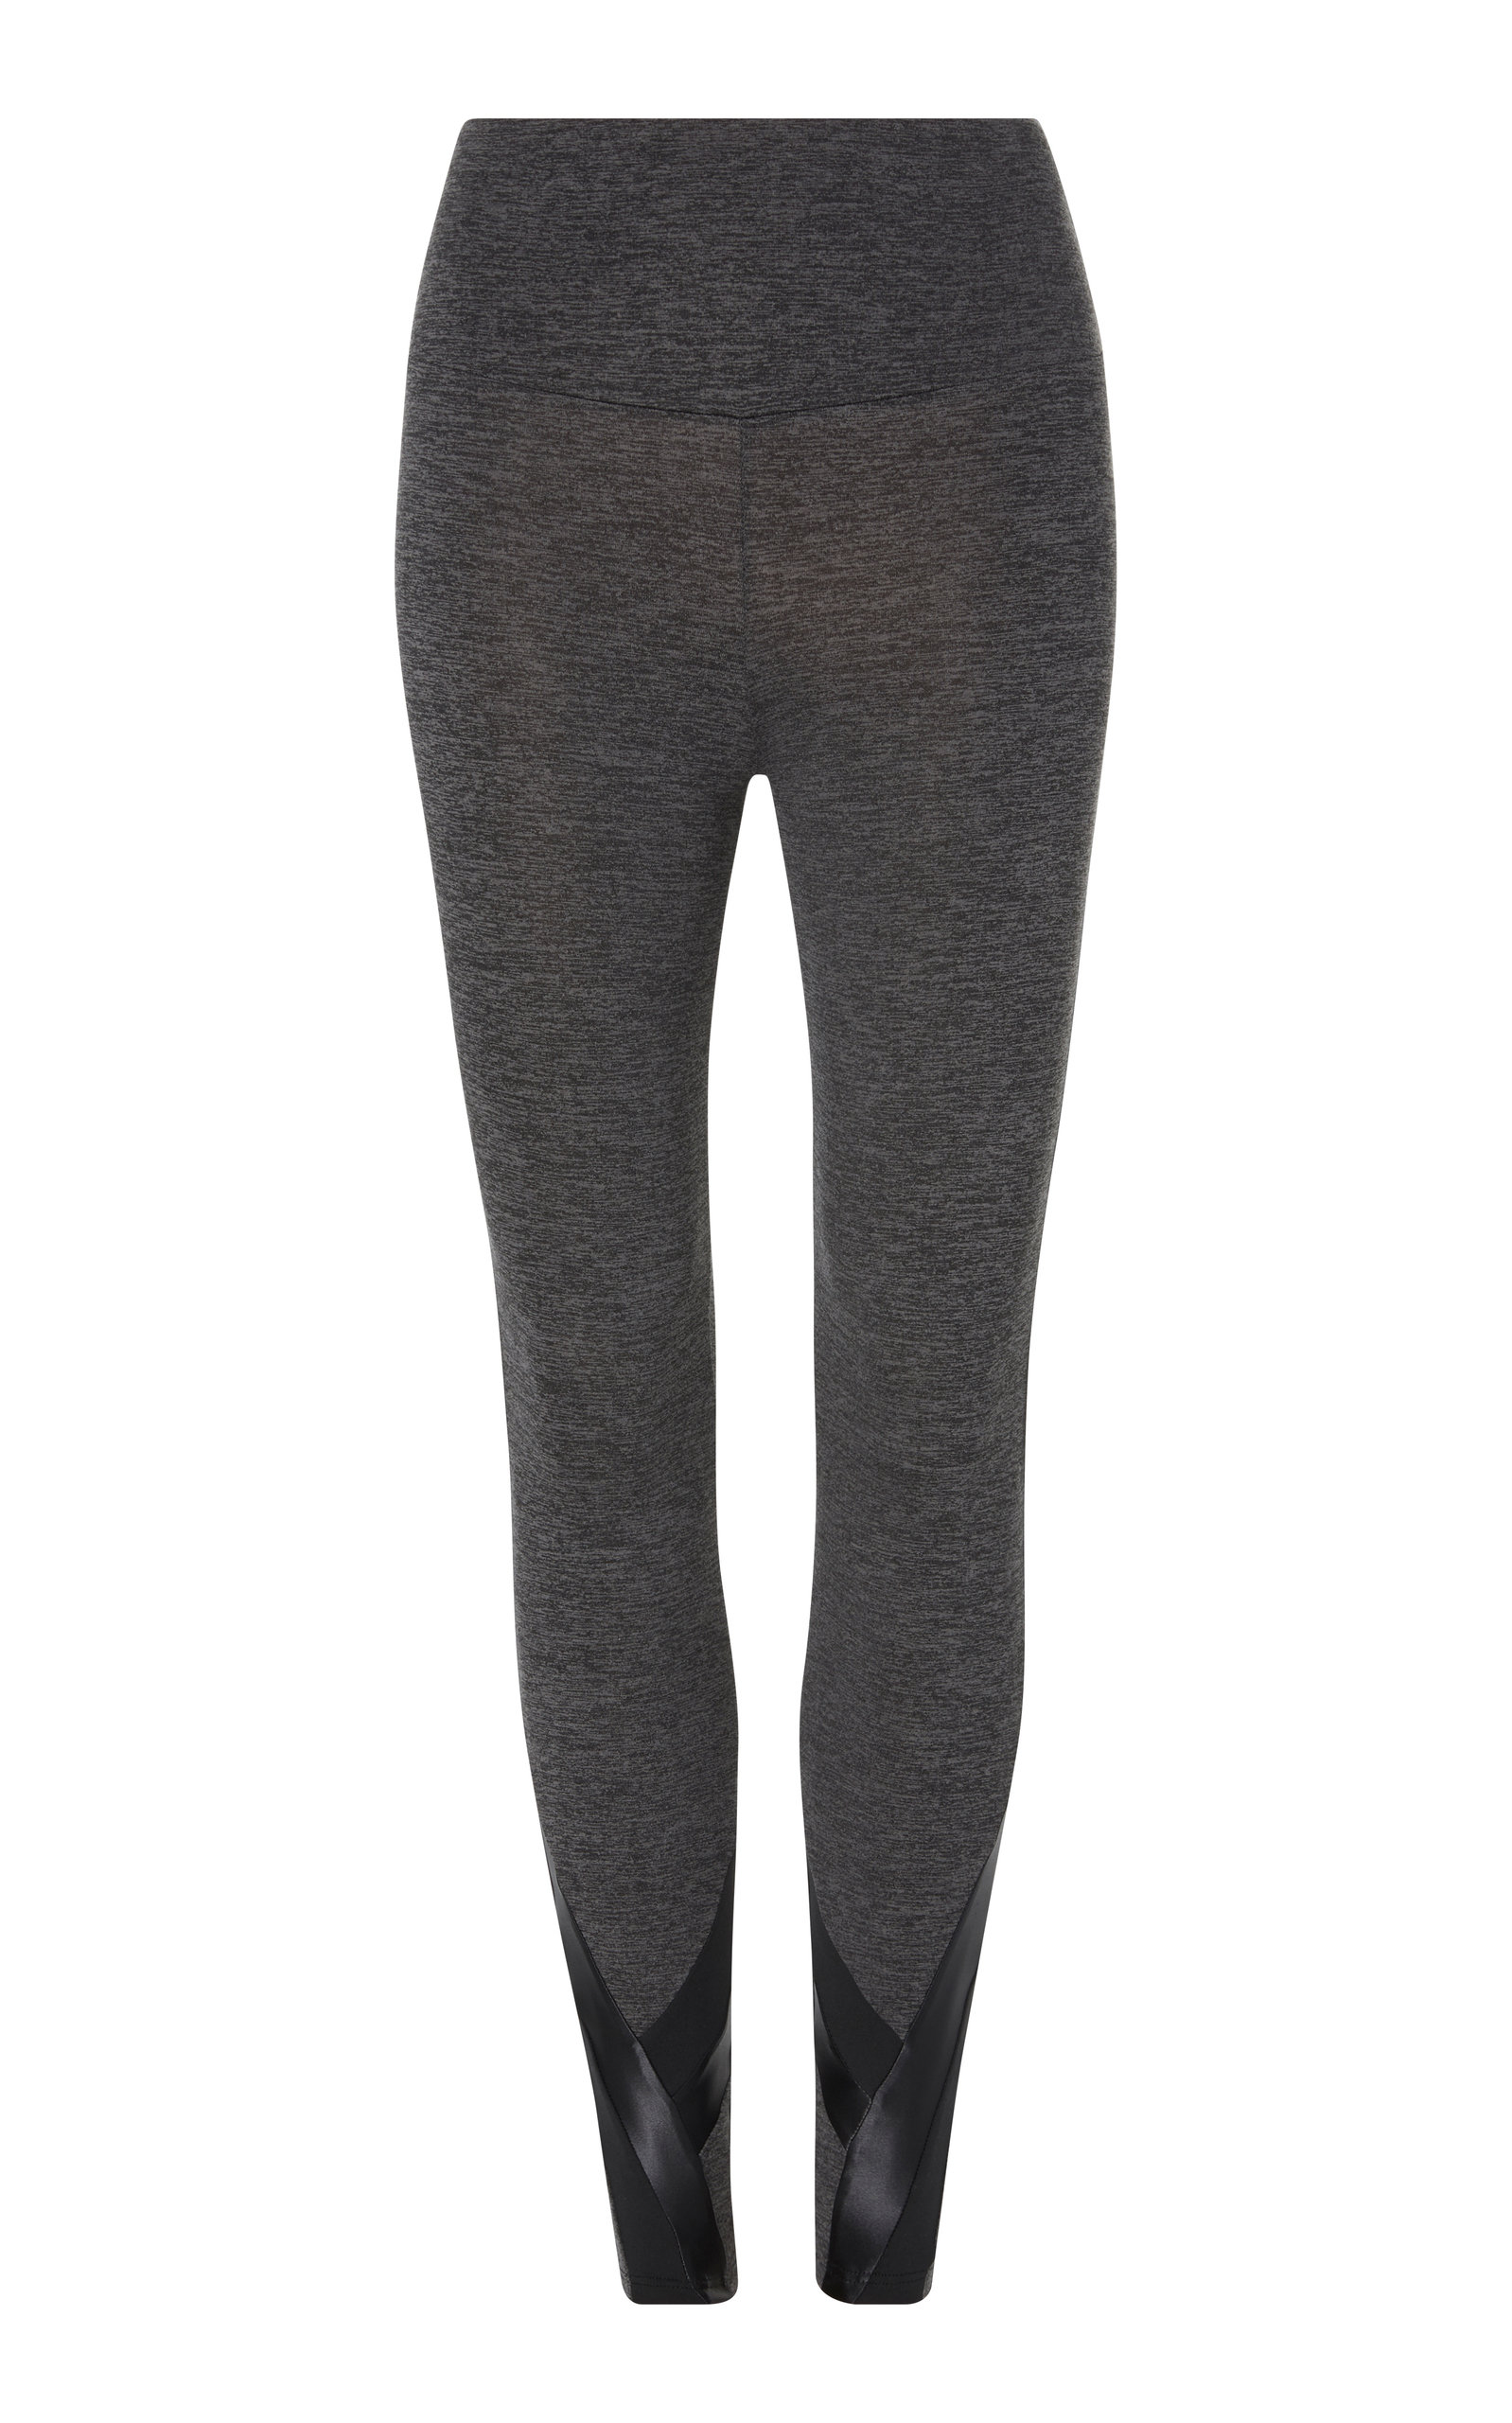 LANSTON ISSAC LUSTER BLOCK LEGGINGS